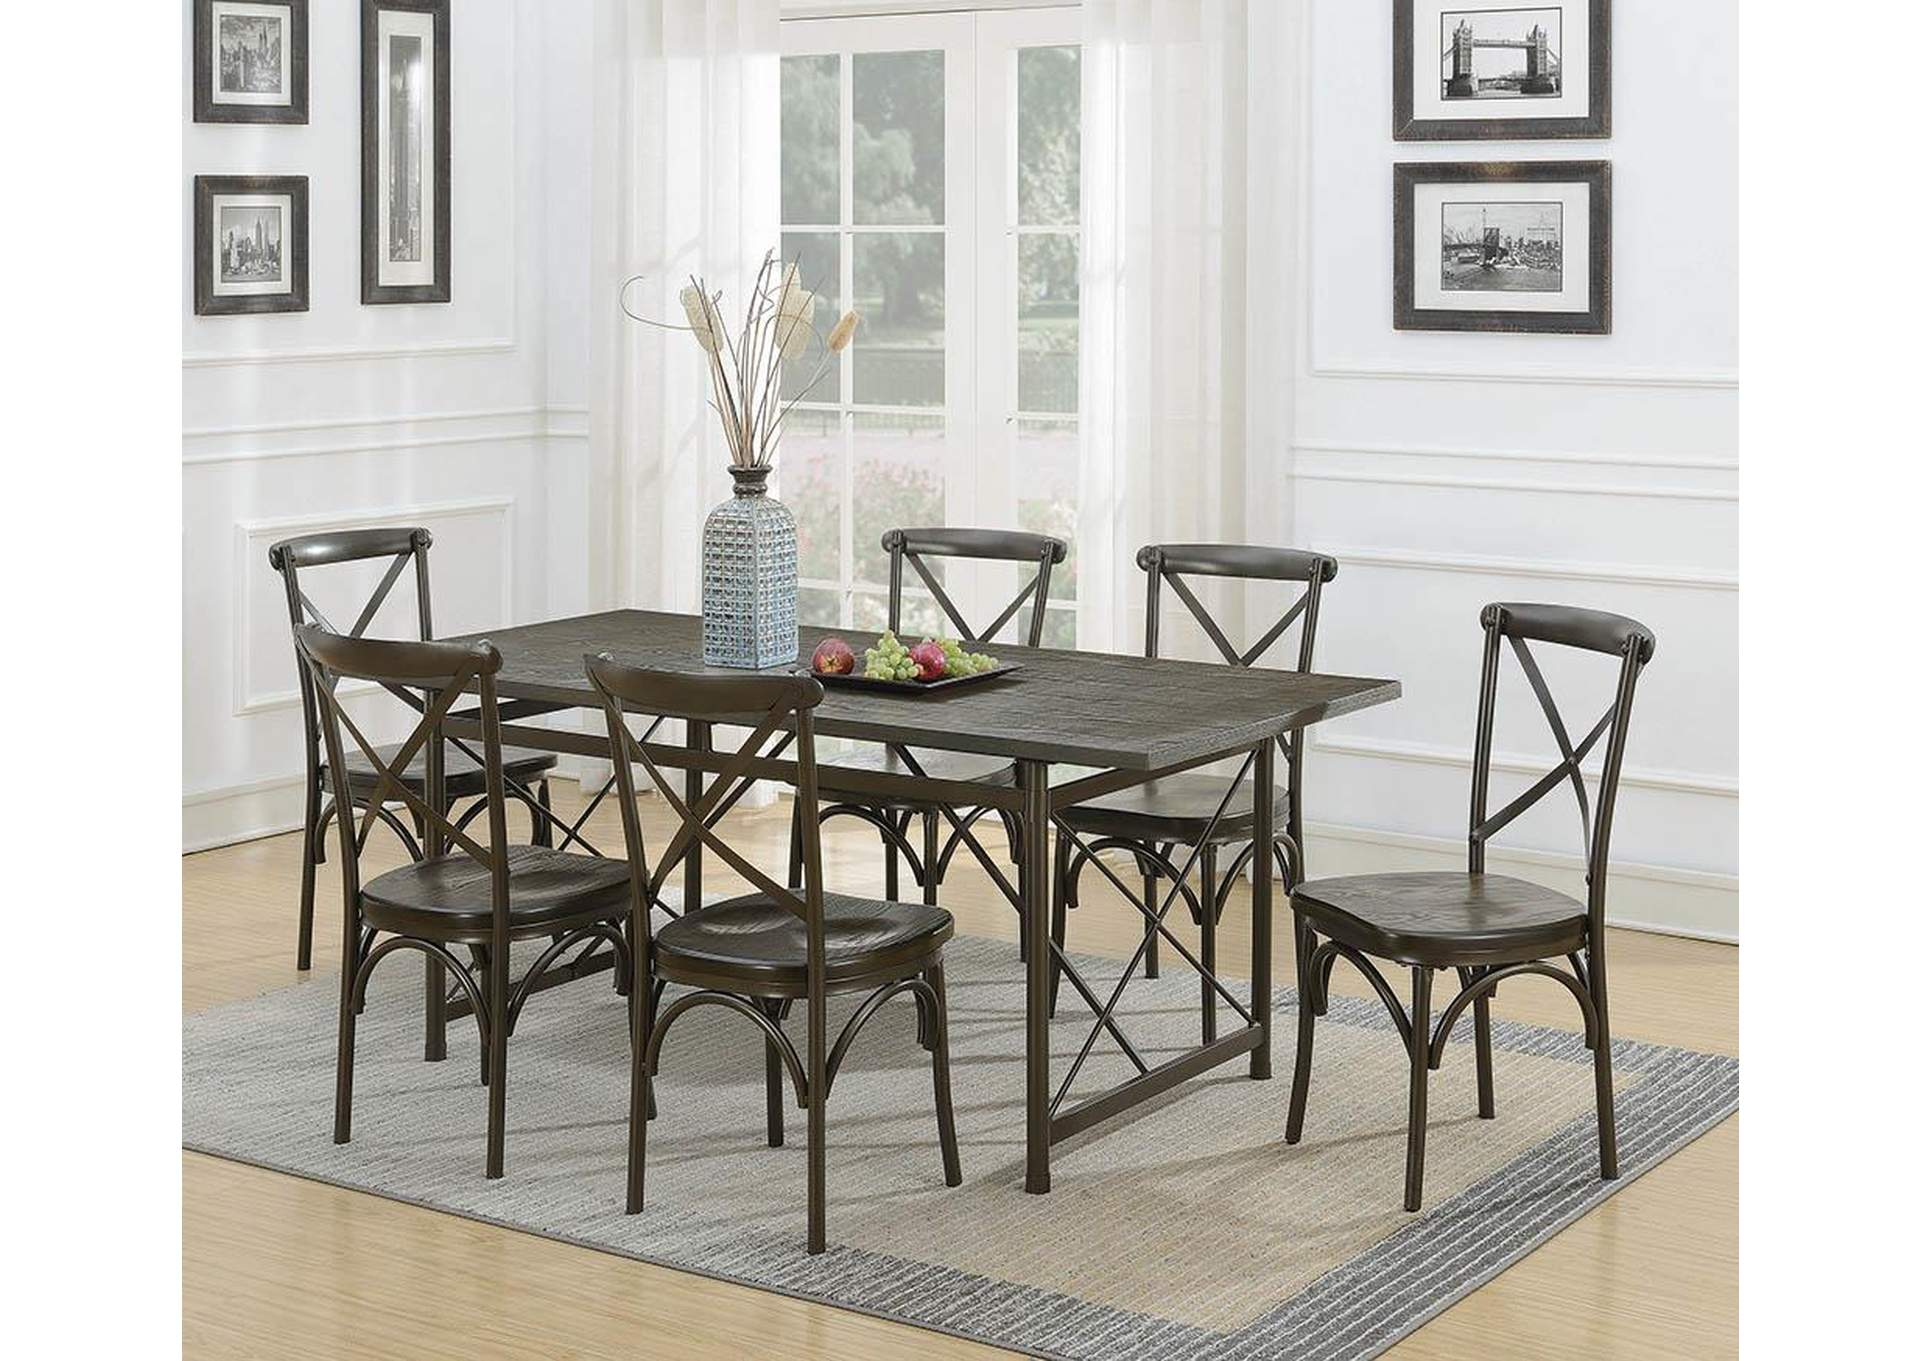 Hawthorne Chic Brown Dining Table,Coaster Furniture